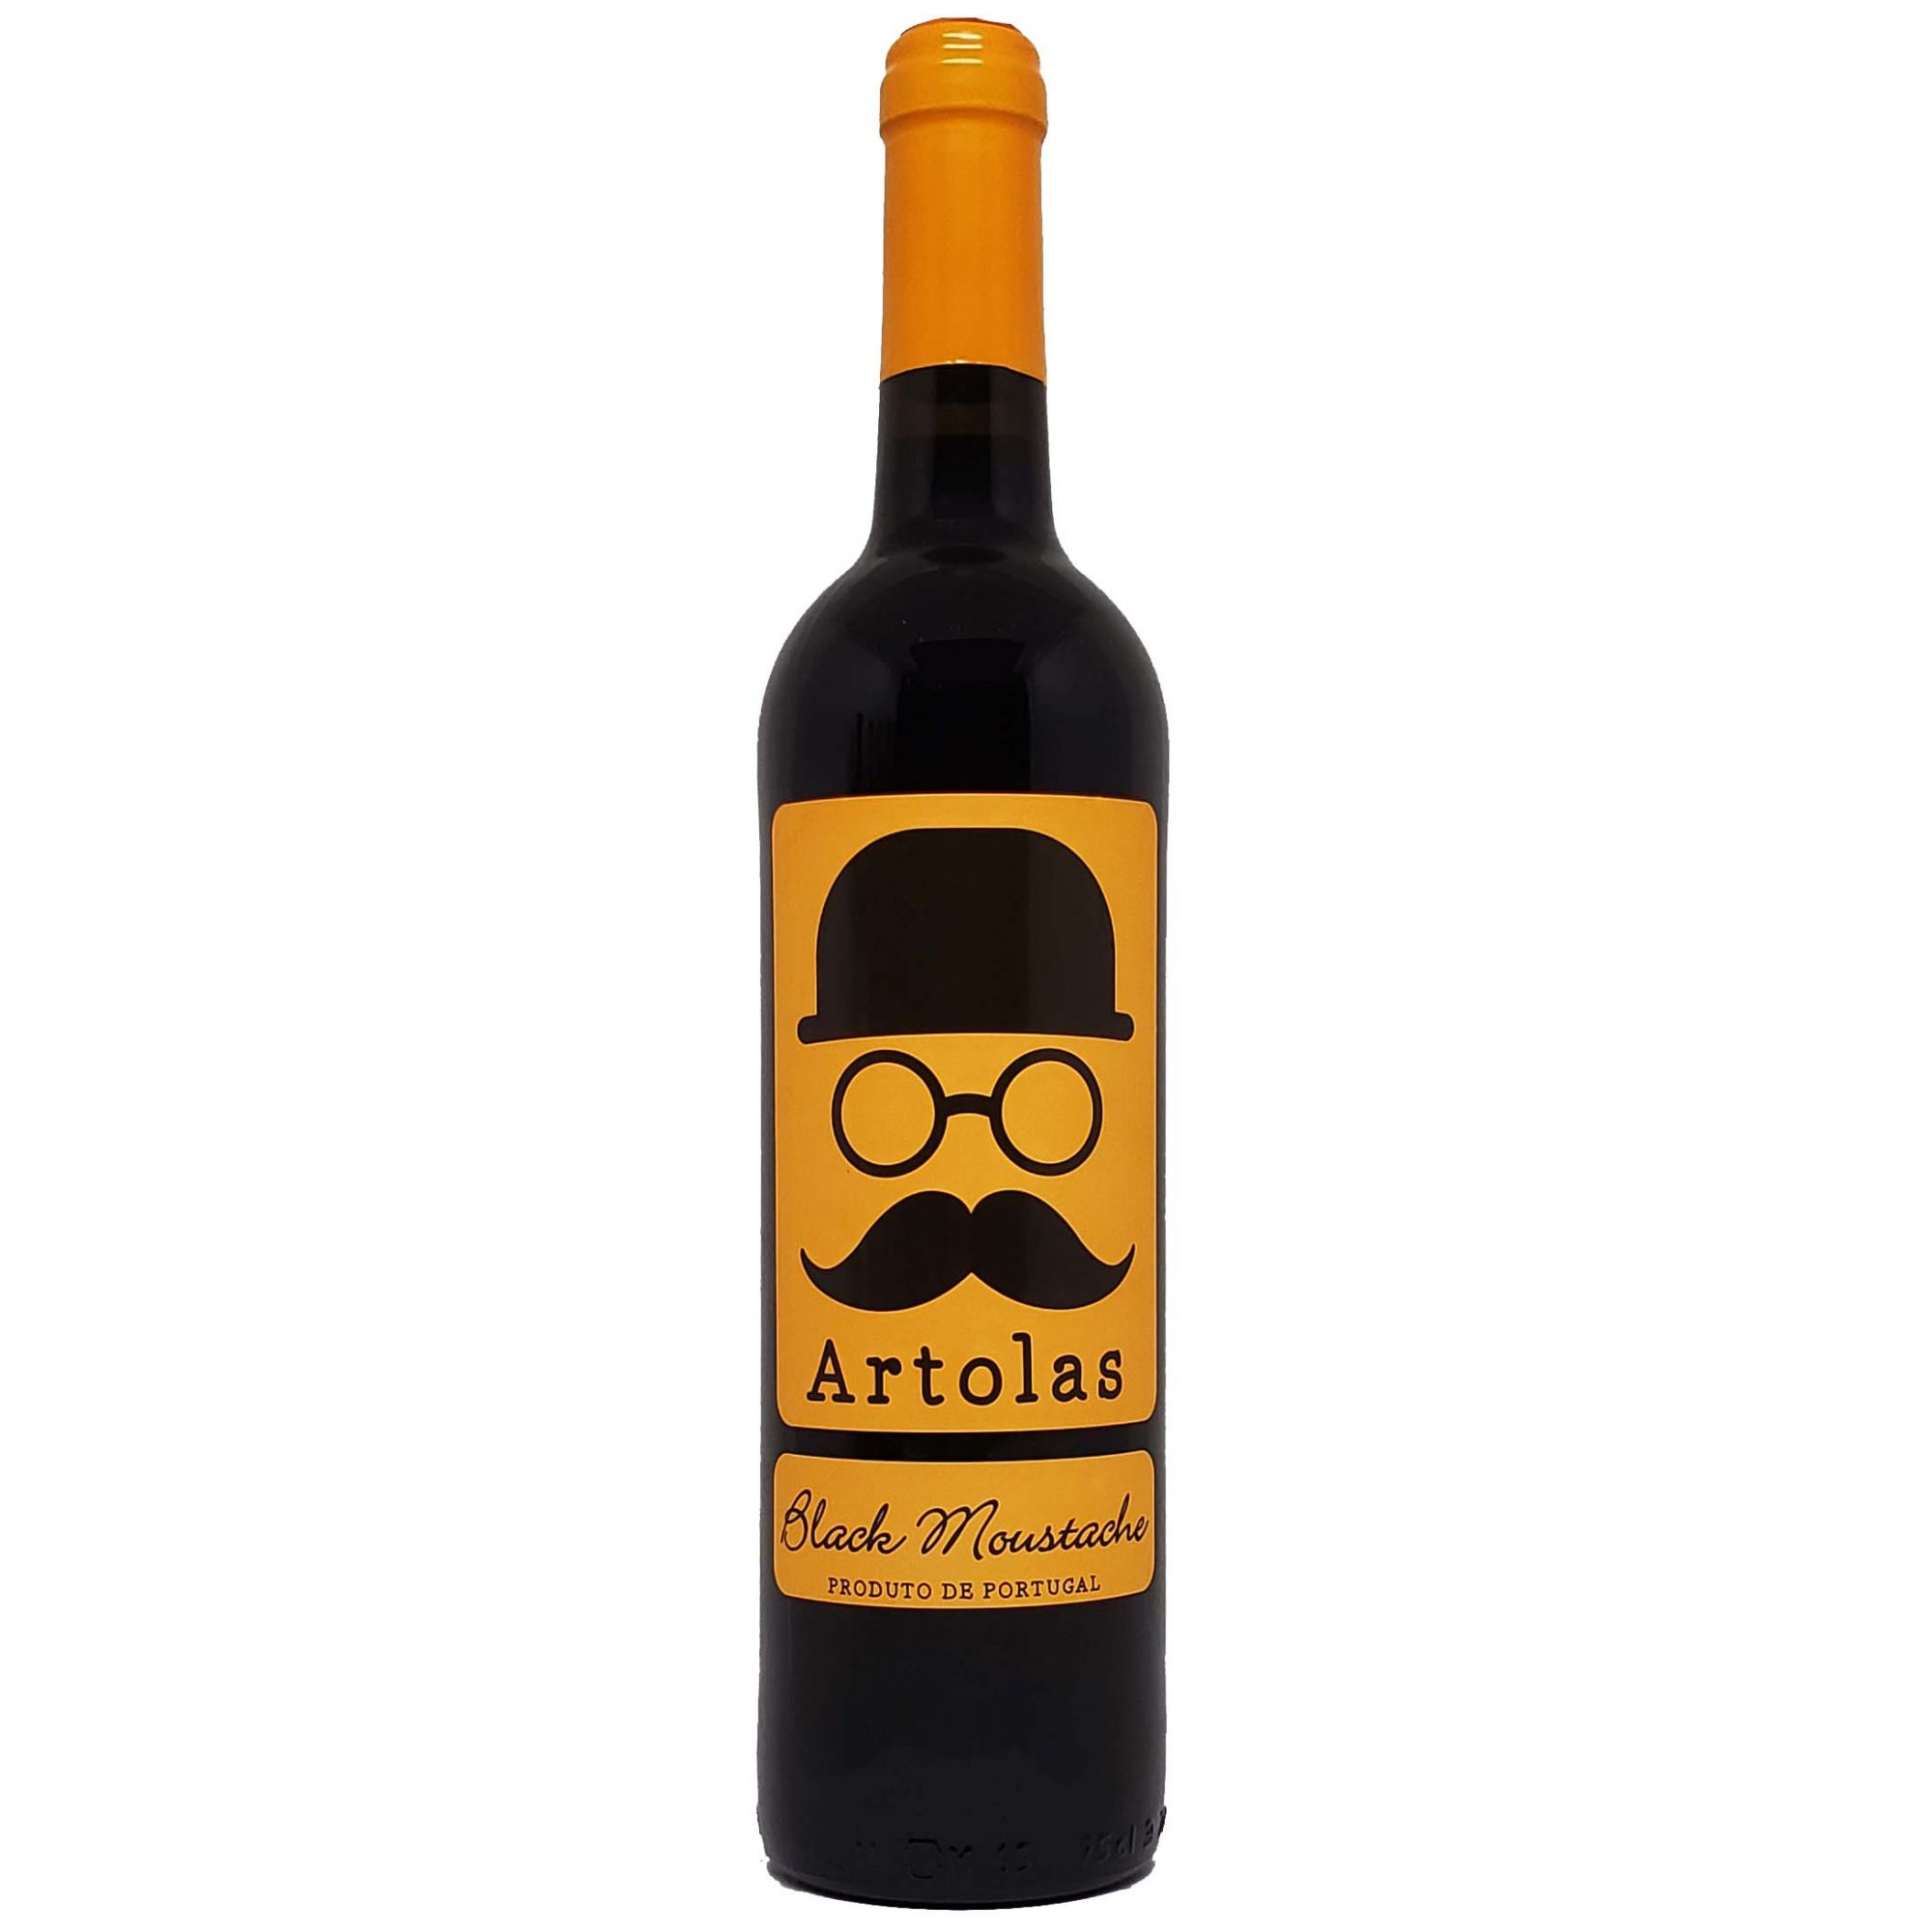 Vinho Tinto Artolas Black Moustache - 750ml -